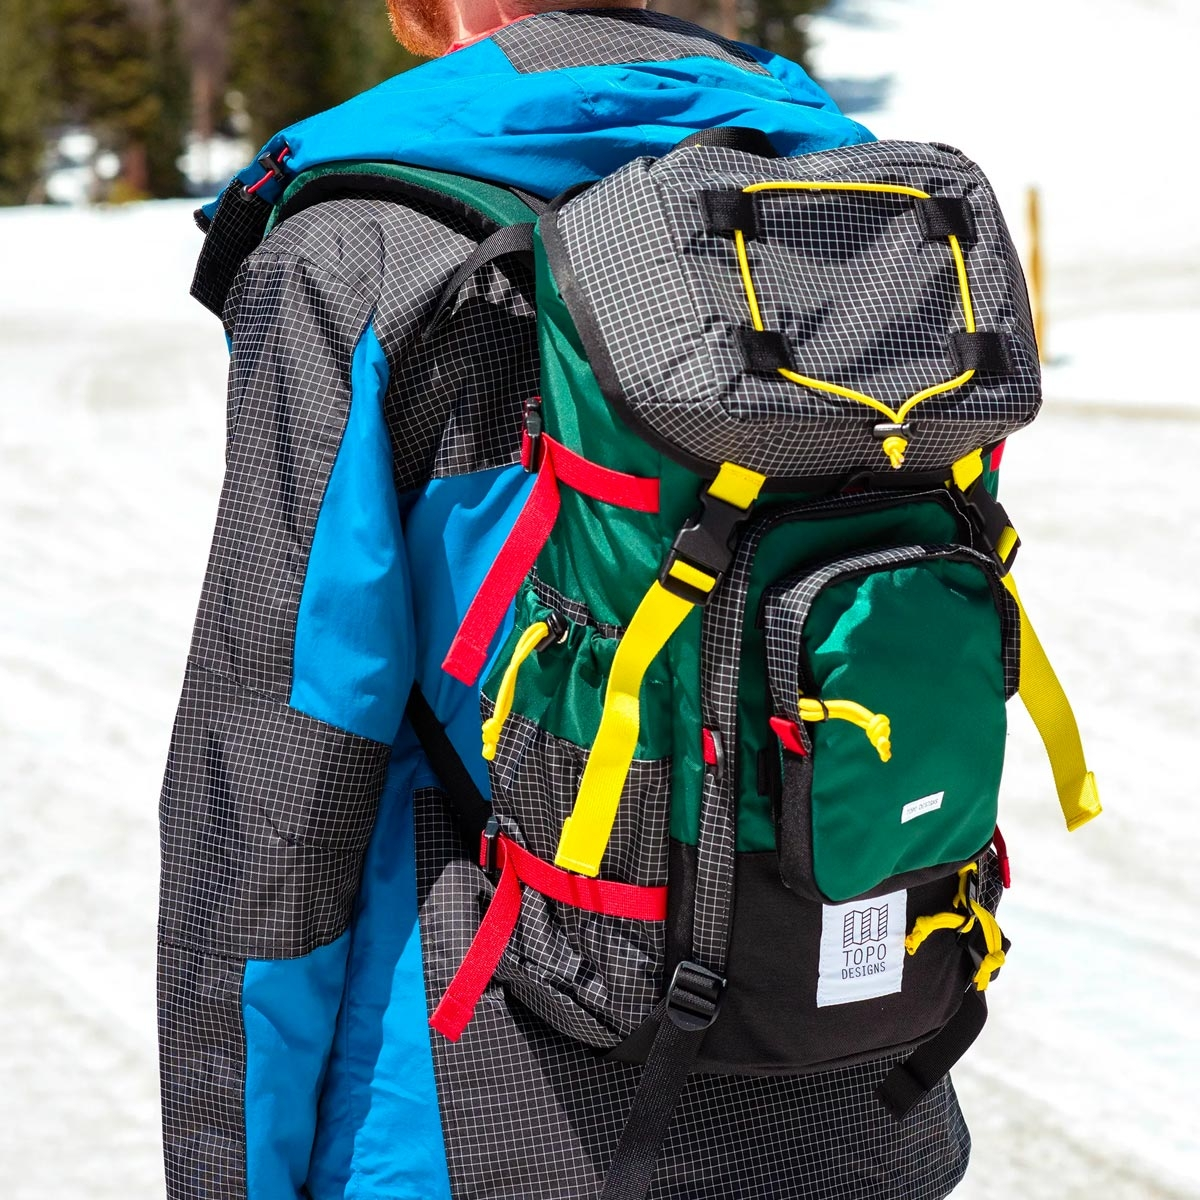 Topo Designs Topo Designs Subalpine Pack Forest, INTENTIONALLY DESIGNED TO STAND OUT